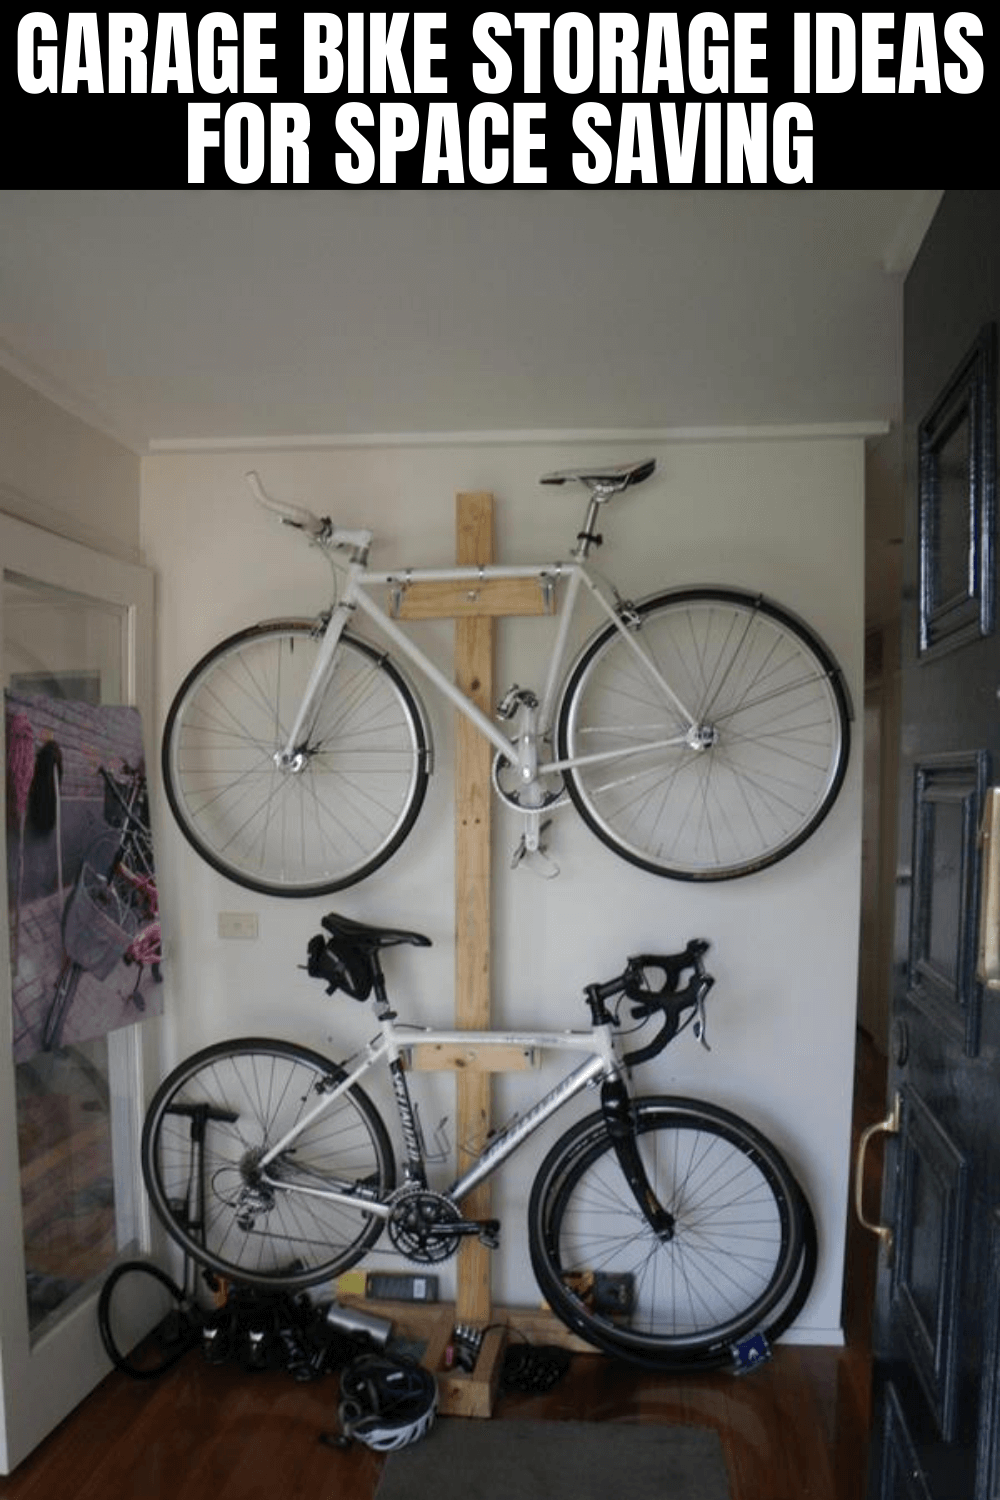 GARAGE BIKE STORAGE IDEAS FOR SPACE SAVING